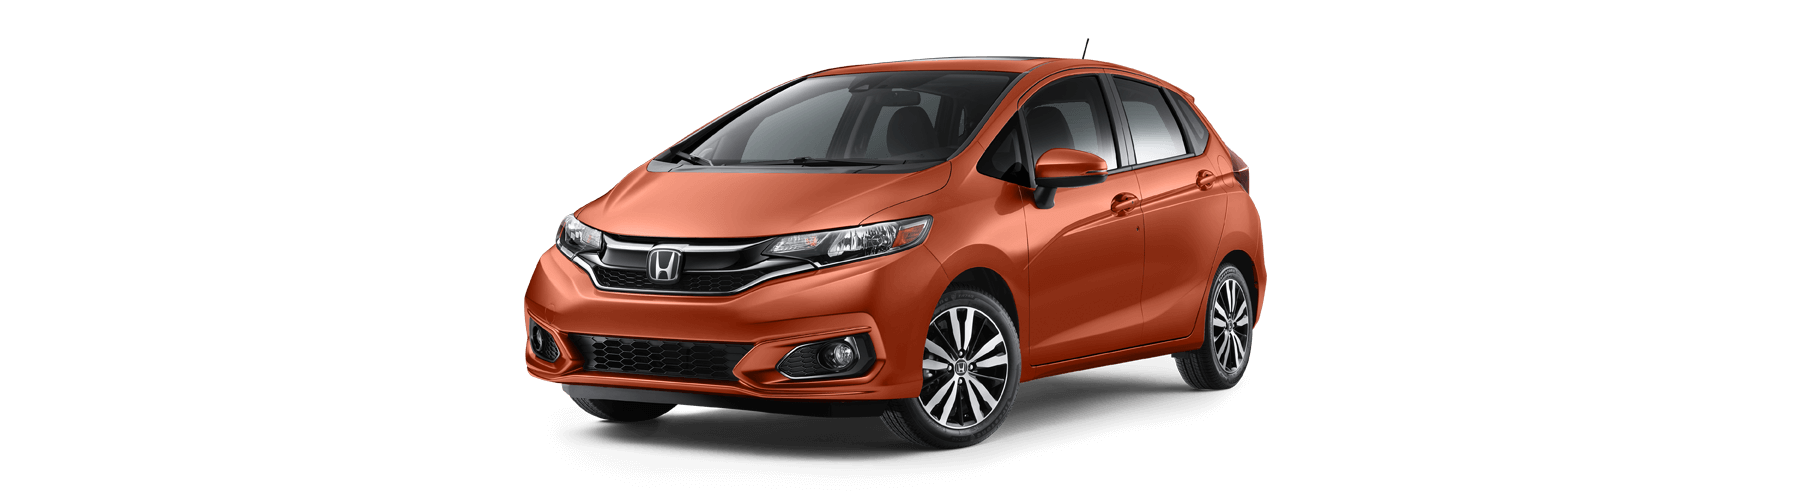 Autofair Honda 2017 2018 2019 Honda Reviews